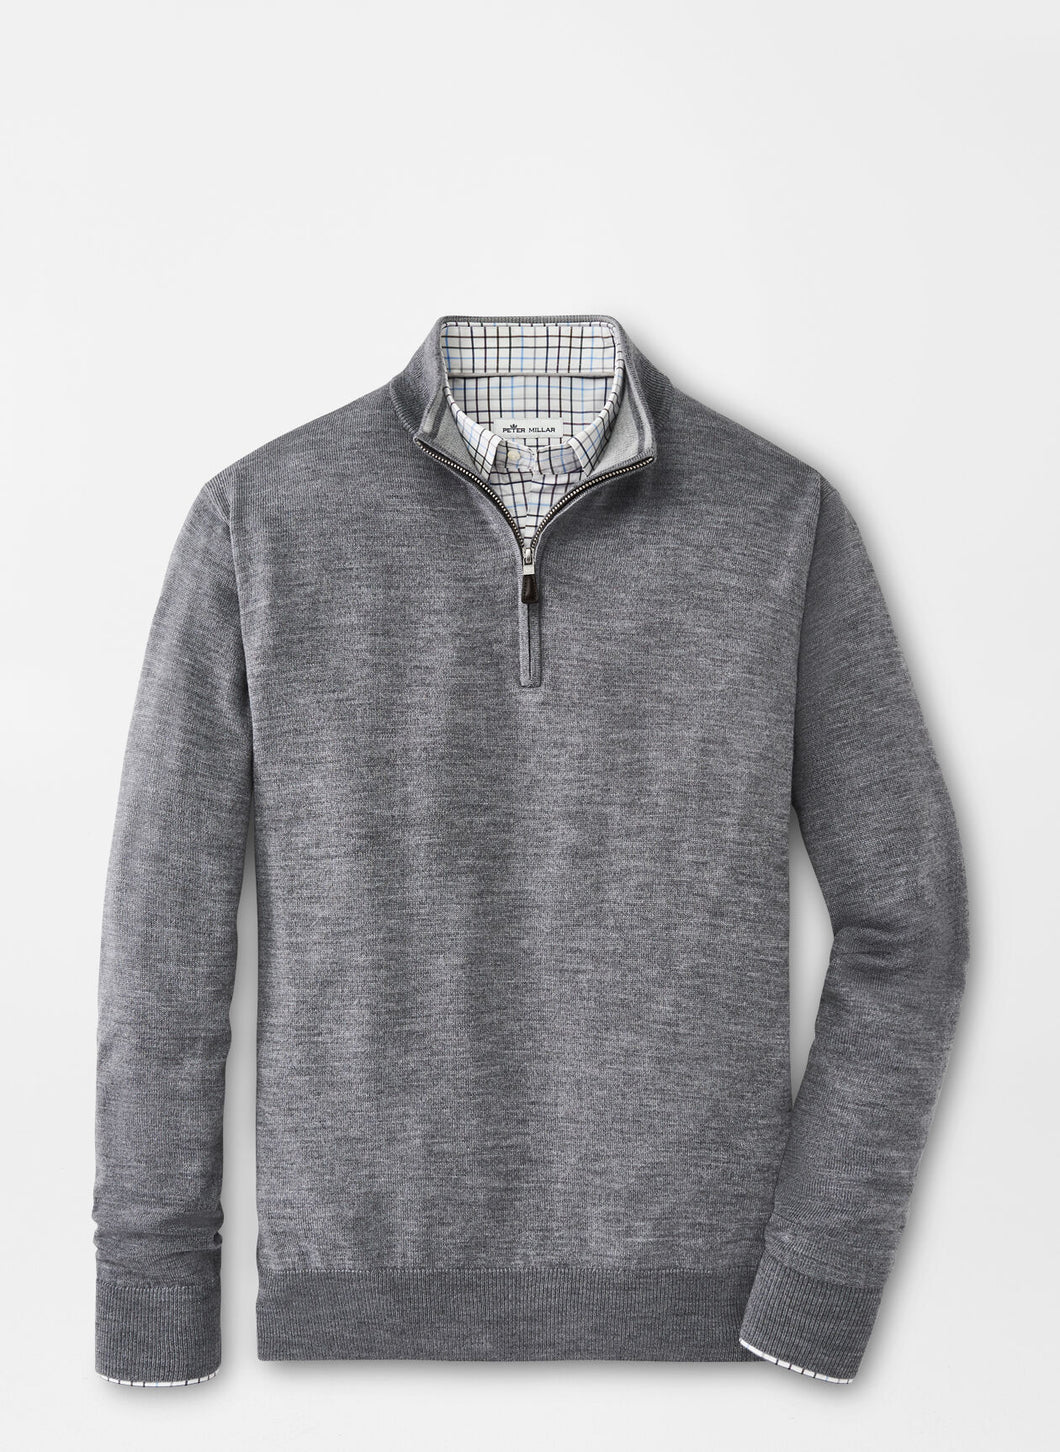 Peter Millar Crown Soft Merino-Silk Quarter Zip in British Grey